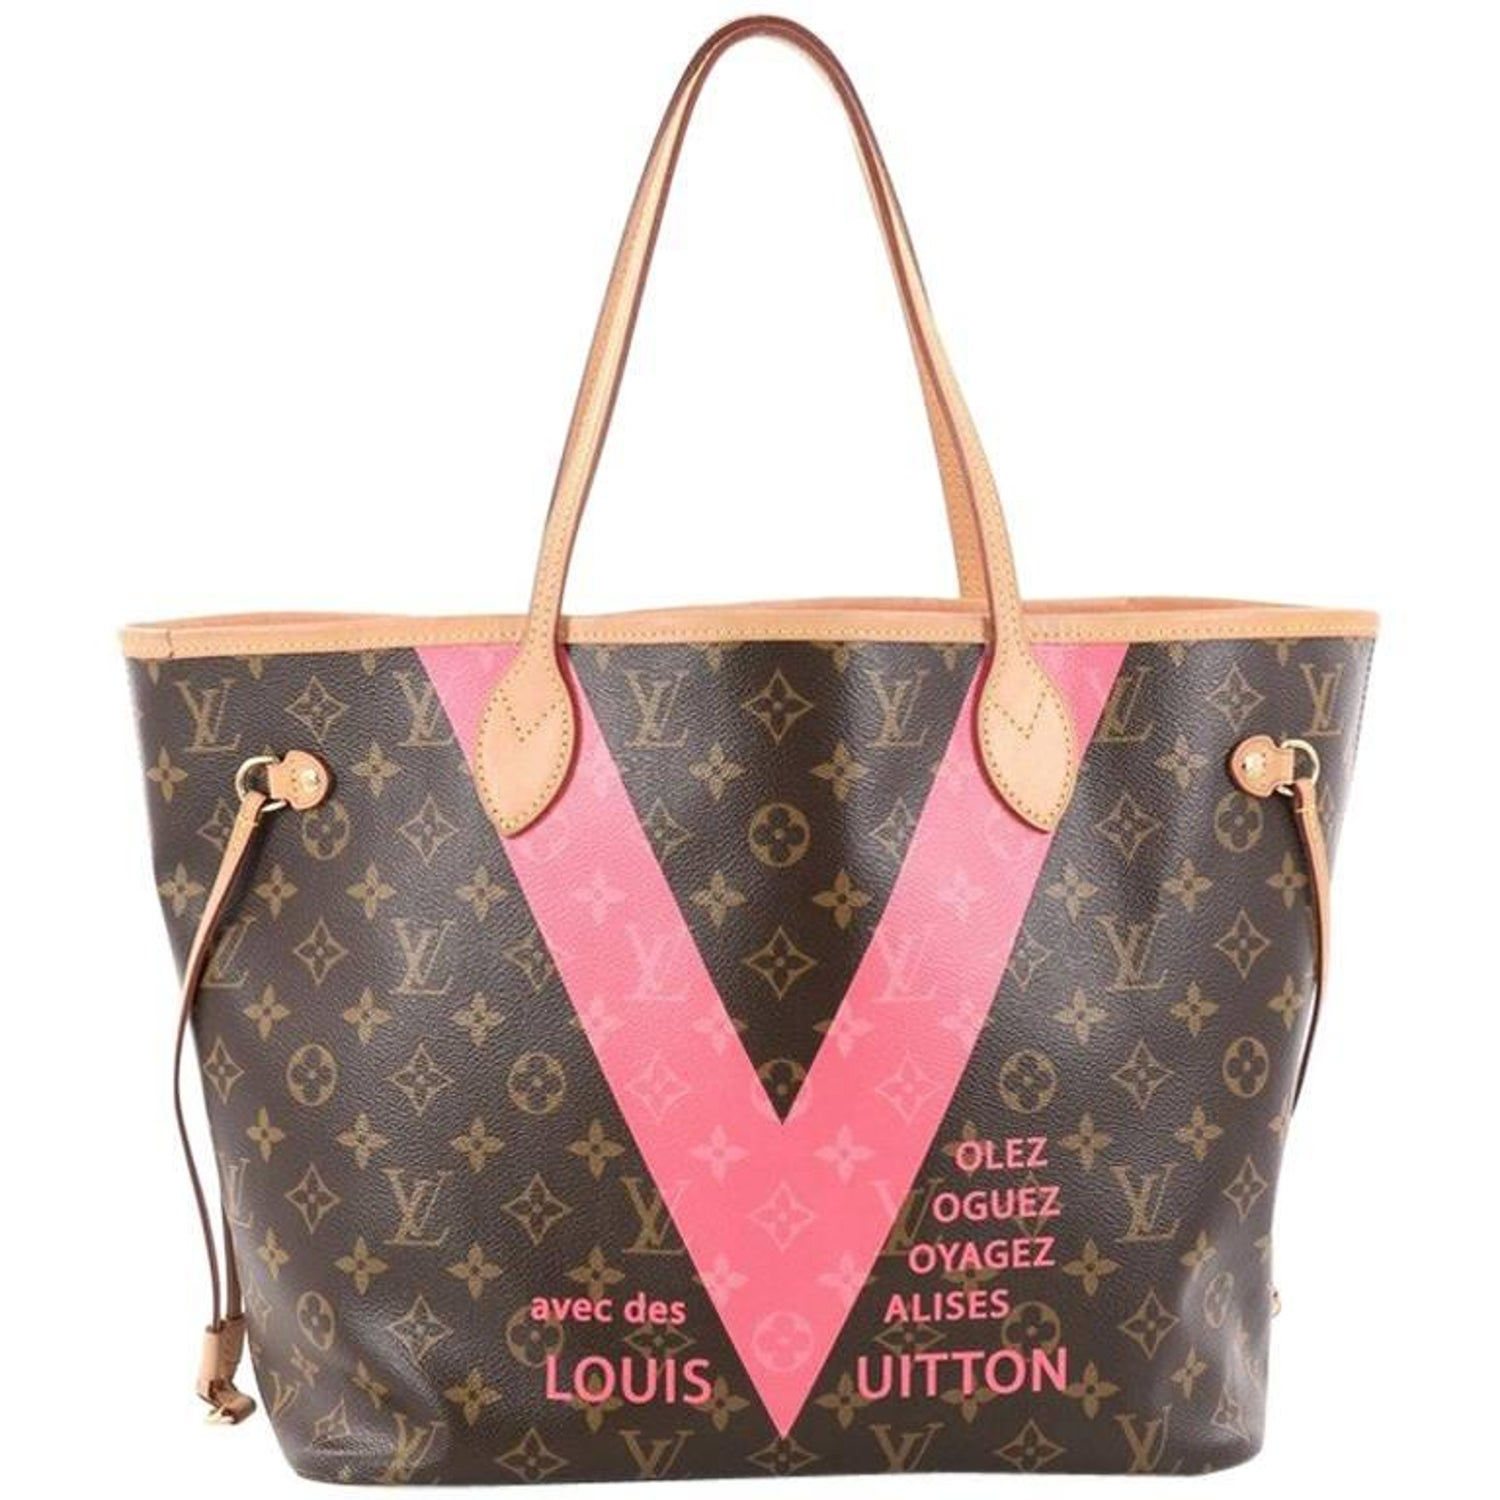 53da0d45ac97 Louis Vuitton Neverfull NM Tote Limited Edition Cities V Monogram Canvas MM  at 1stdibs